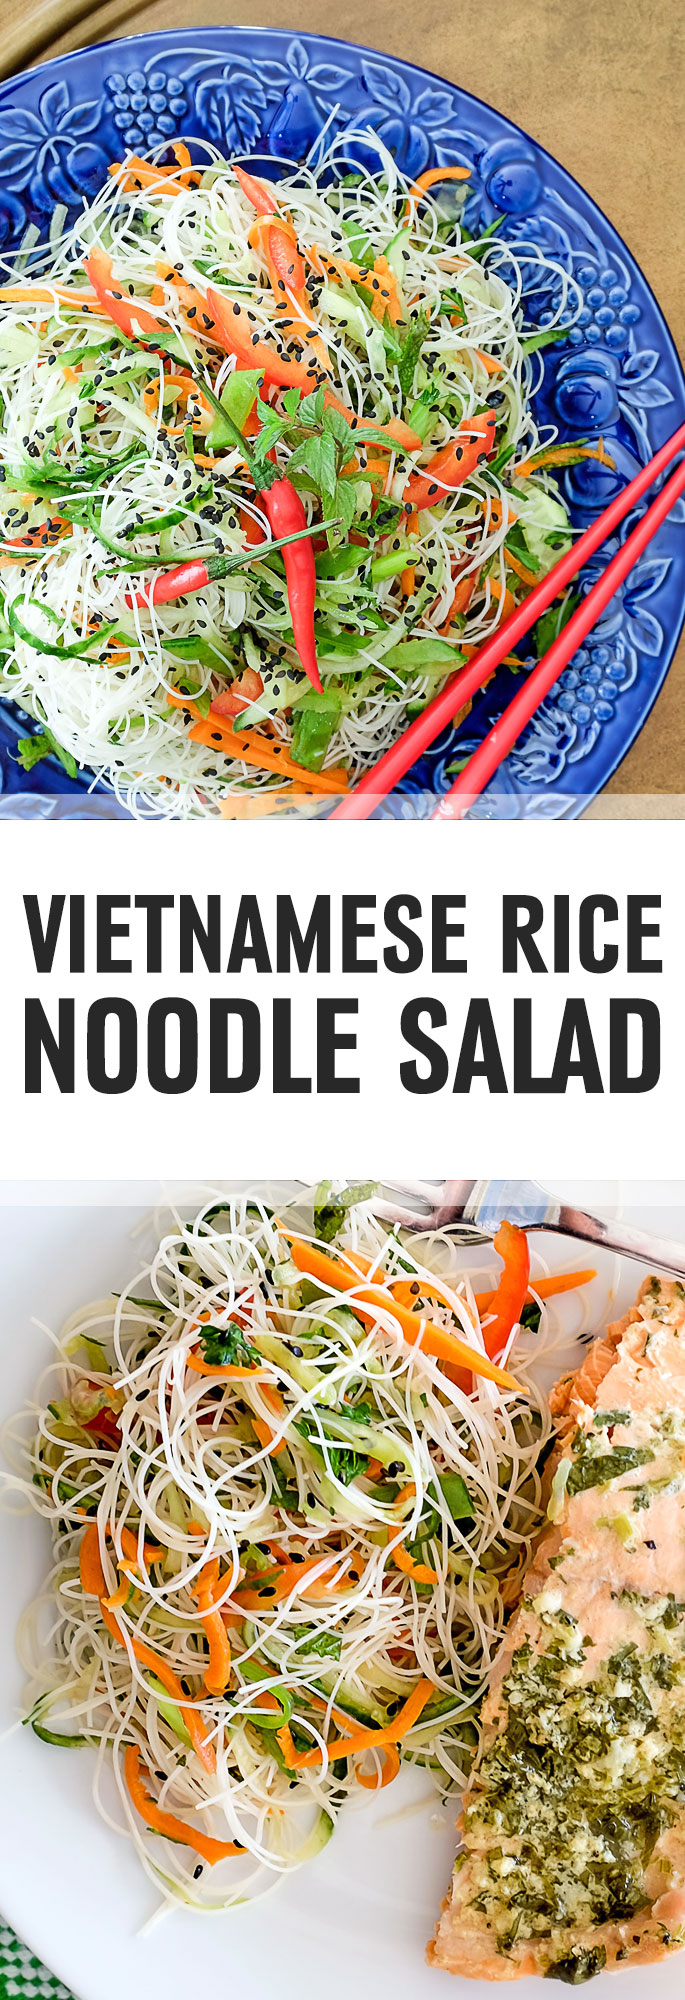 This noodle salad is marinated in Vietnamese dressing making it light, low in calories and low in fat. There are many ways you can serve this salad, such as a starter, small bite or as a side with chicken or fish. This salad is especially refreshing in hot summer months. Shared via http://www.gluteninsight.com